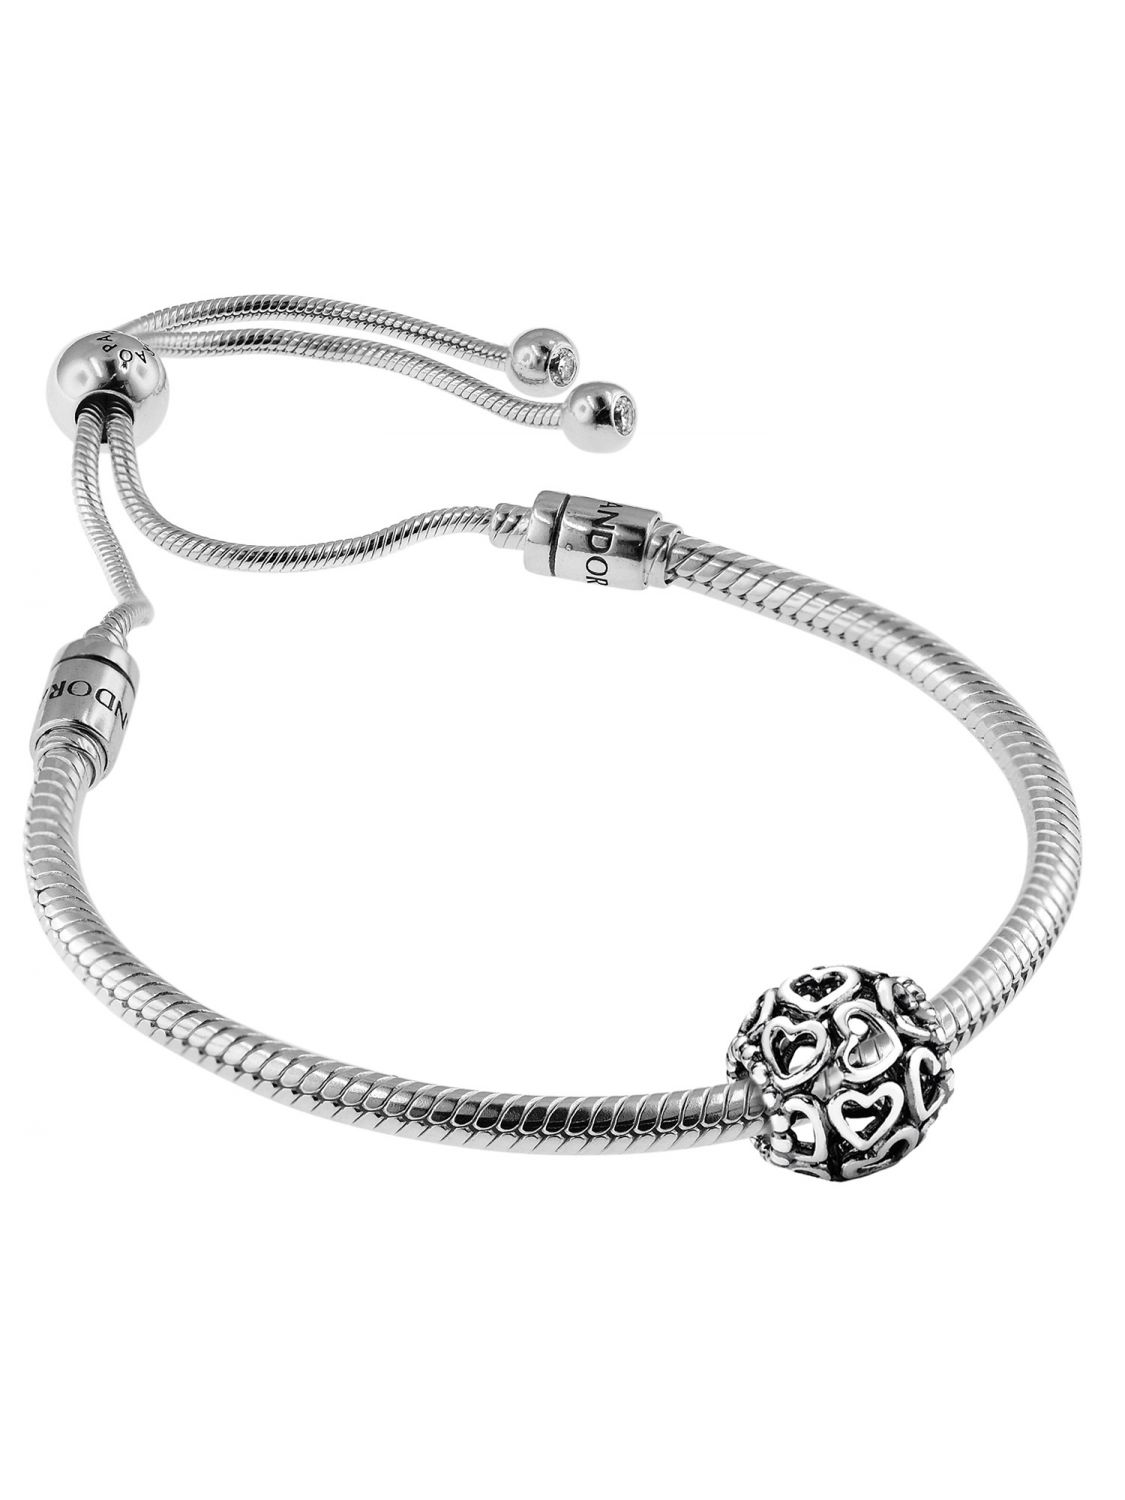 f296bba8c Pandora 08664 Bracelet Set Moments Sliding and Charm Open Your Heart Image  1 ...